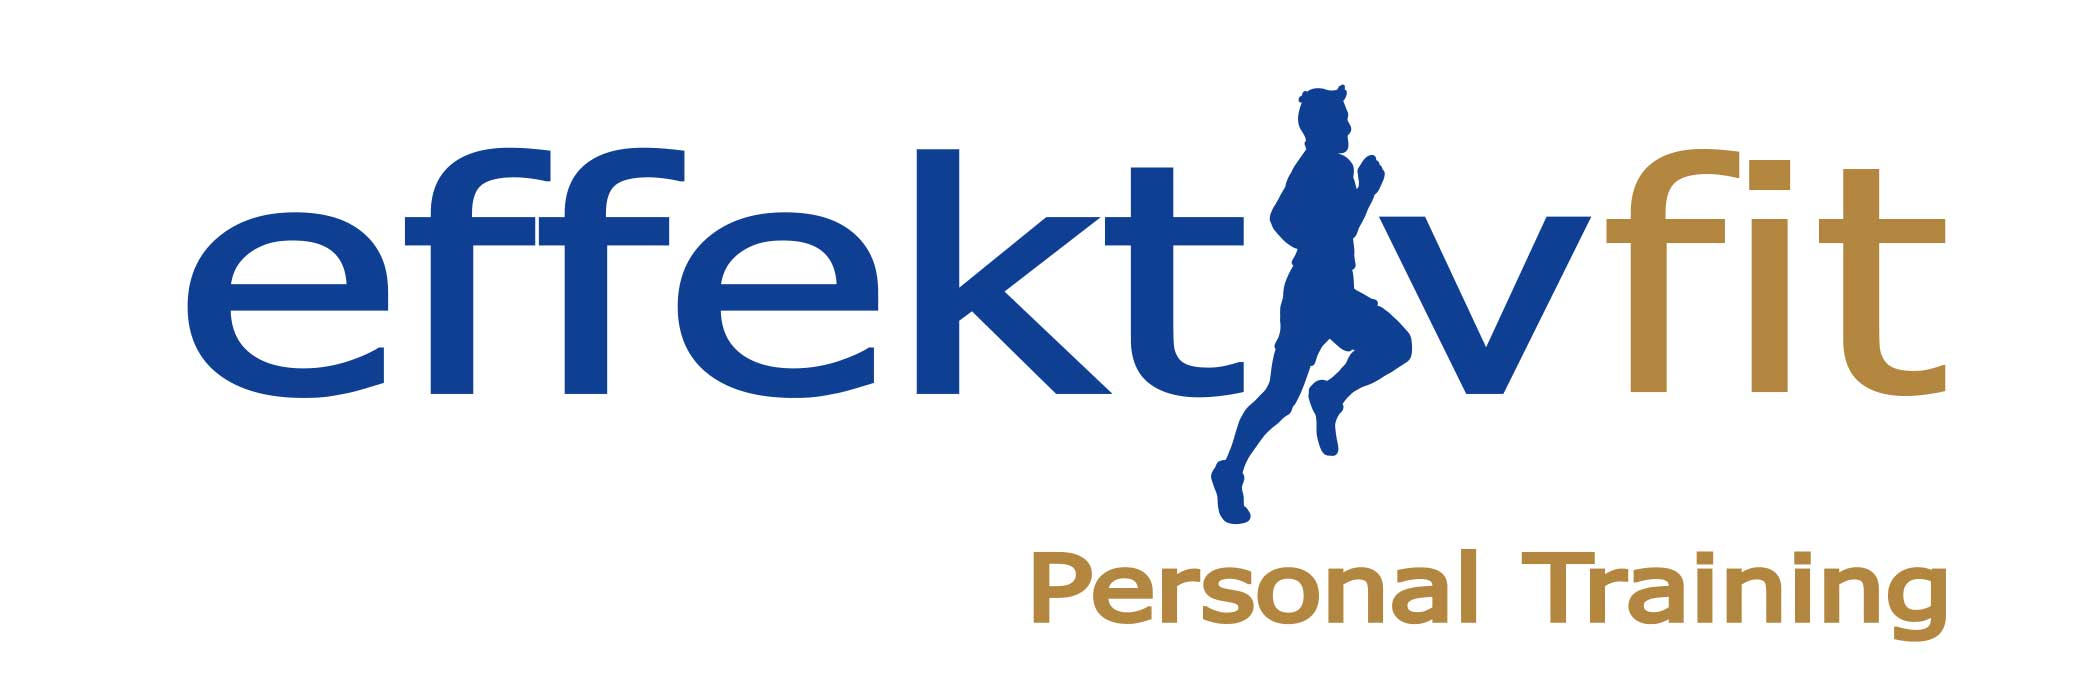 effektiv fit Personal Training